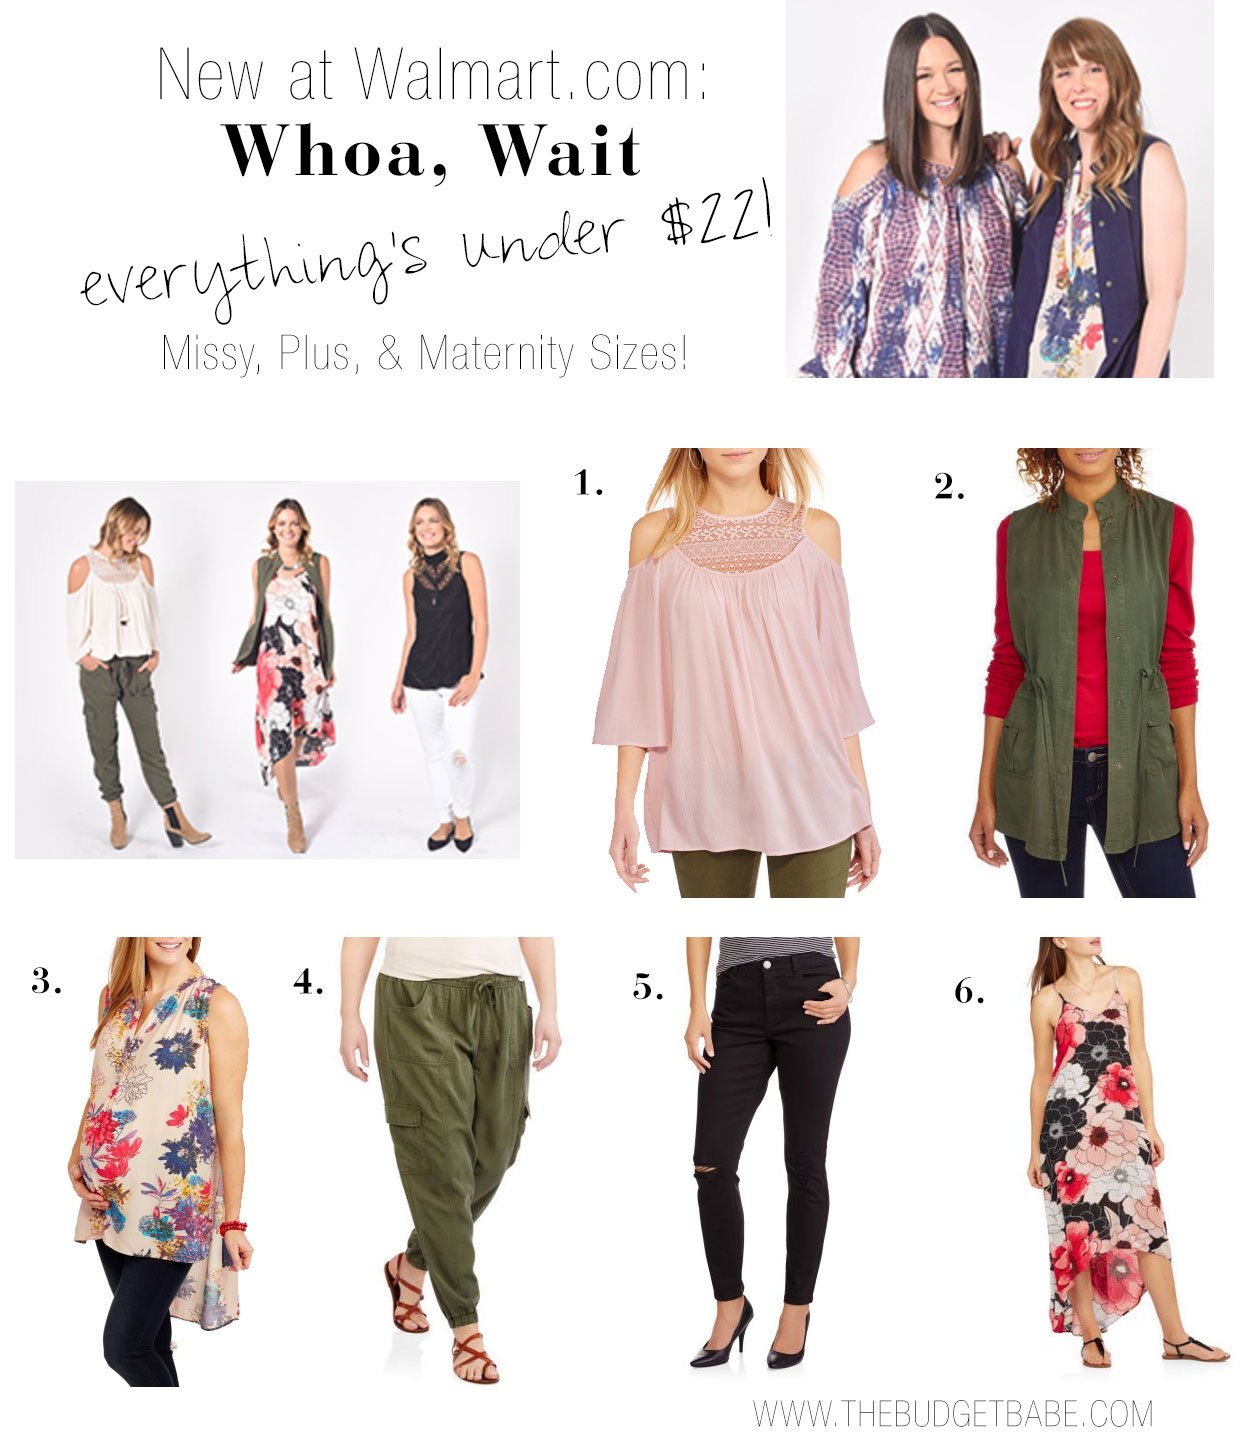 Whoa Wait Walmart offers missy, maternity and plus size fashions under $25! All at Walmart.com.